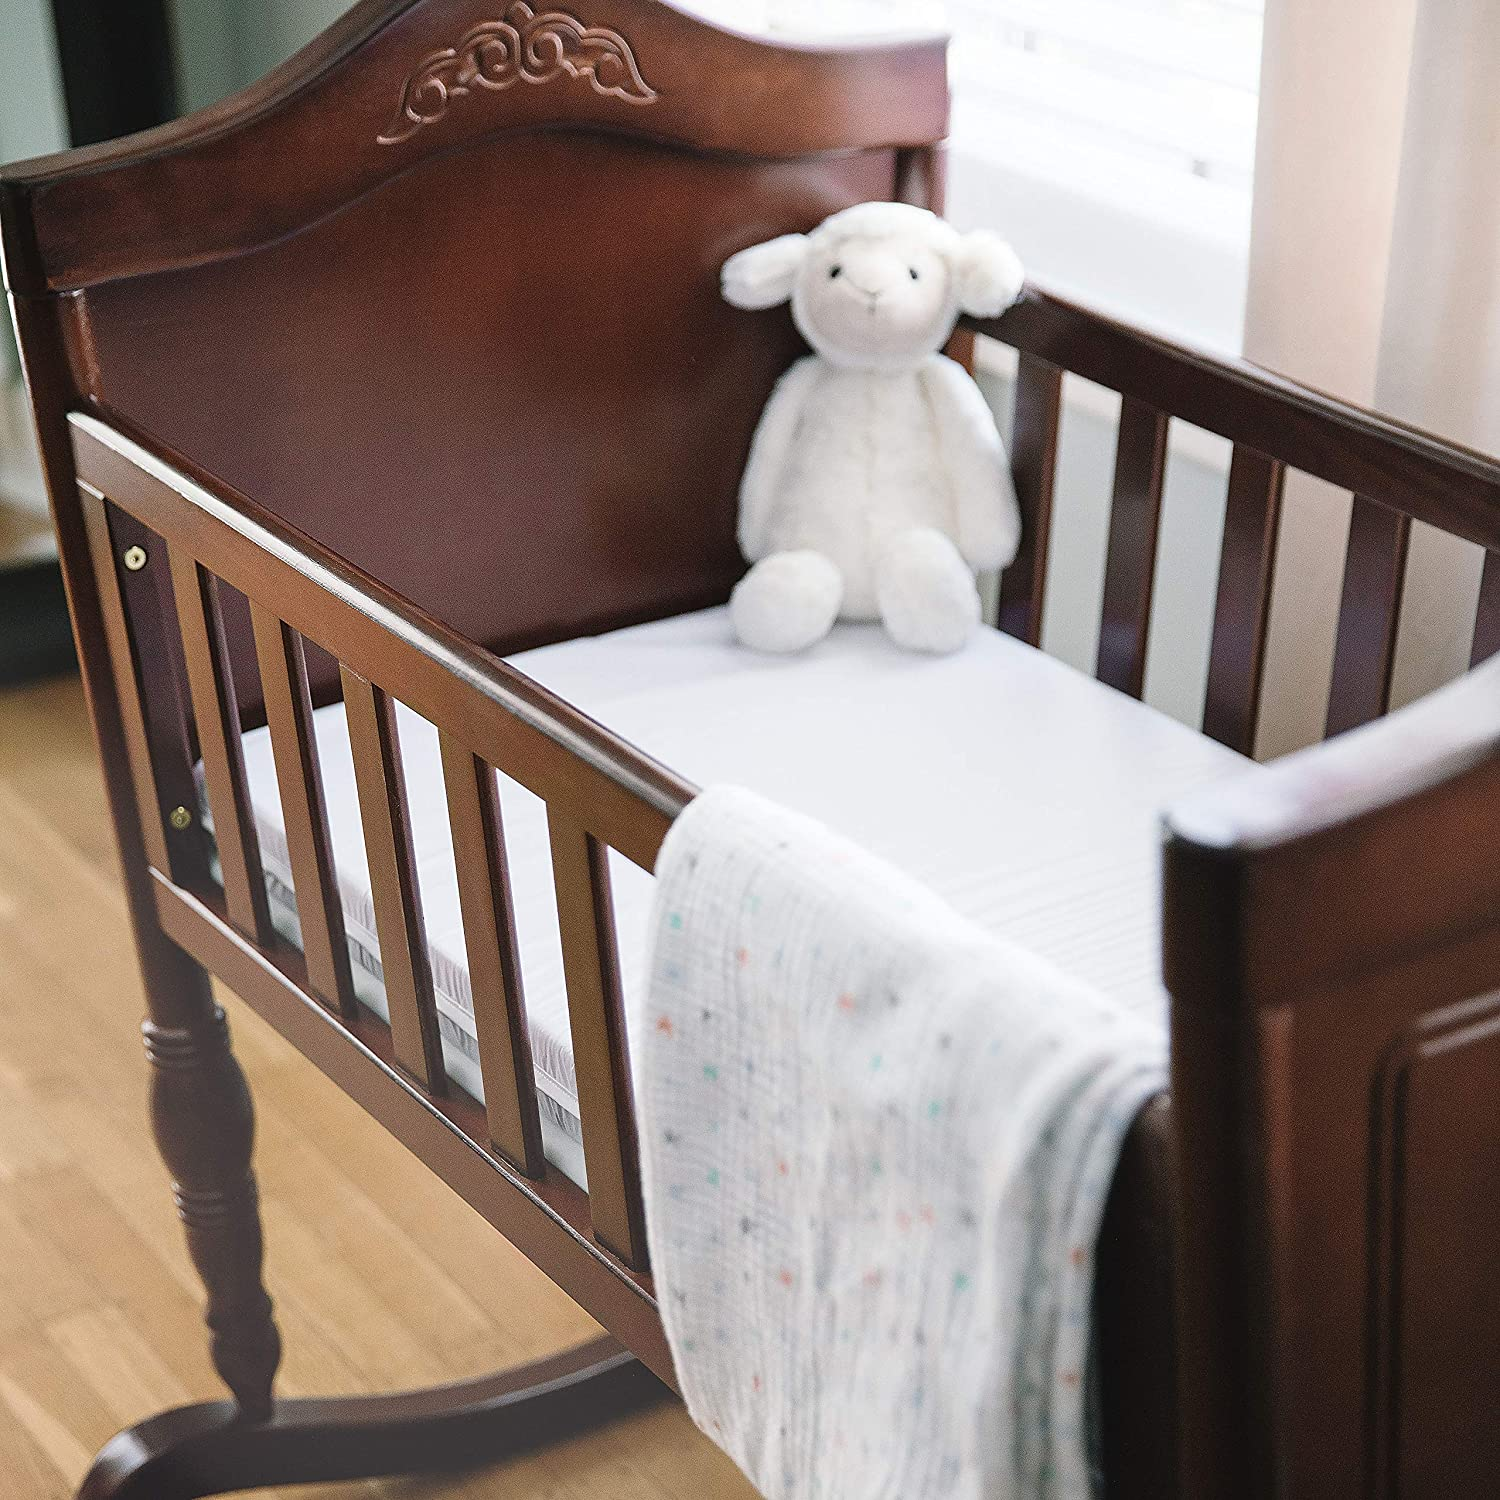 13 x 28 Gift Mark Special Sized Cradle Mattress